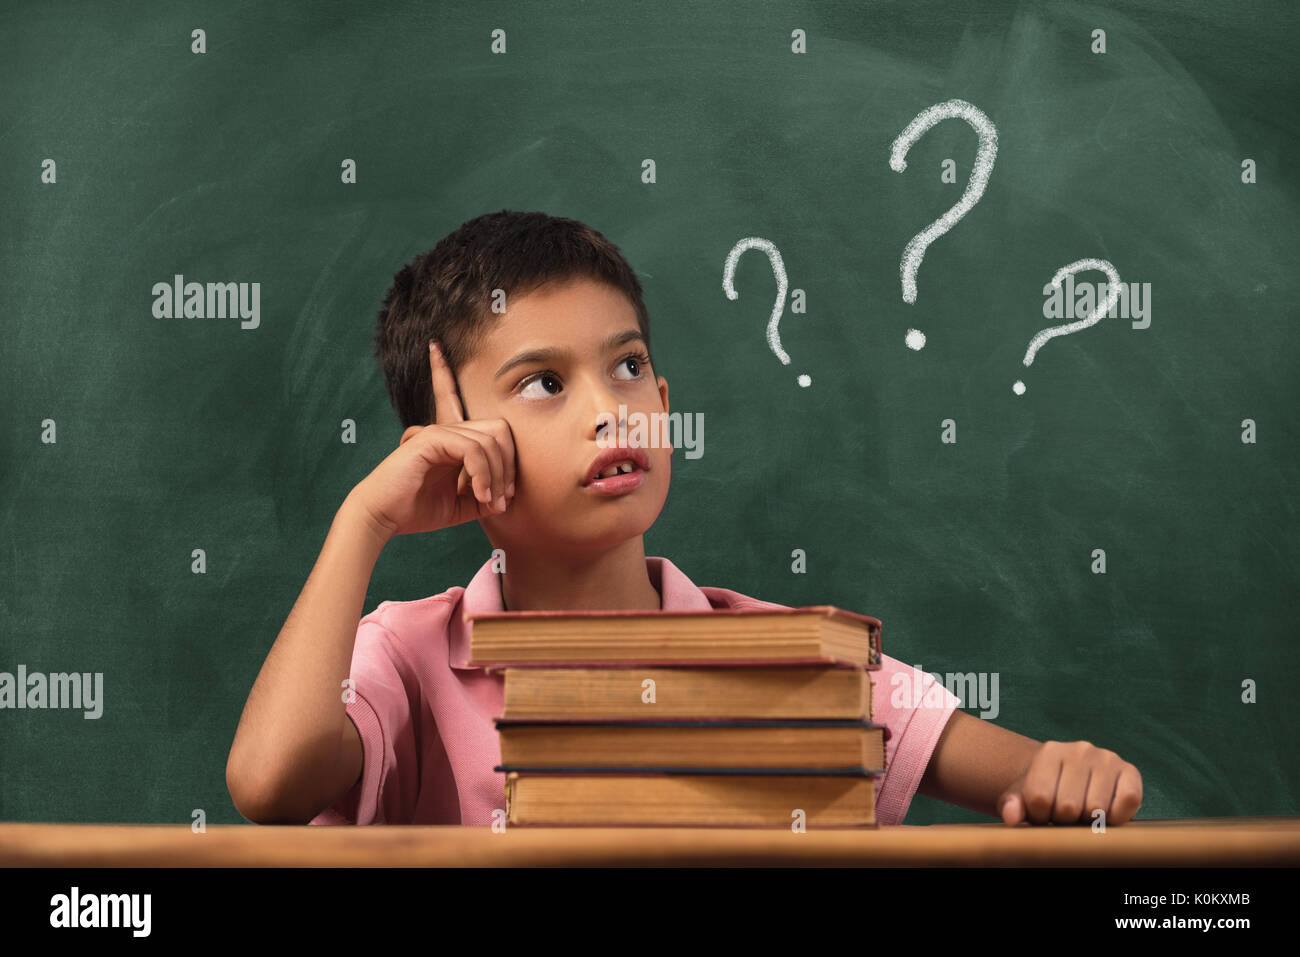 Boy with doubts and thoughts in class. Portrait of male child thinking against question marks on blackboard - Stock Image